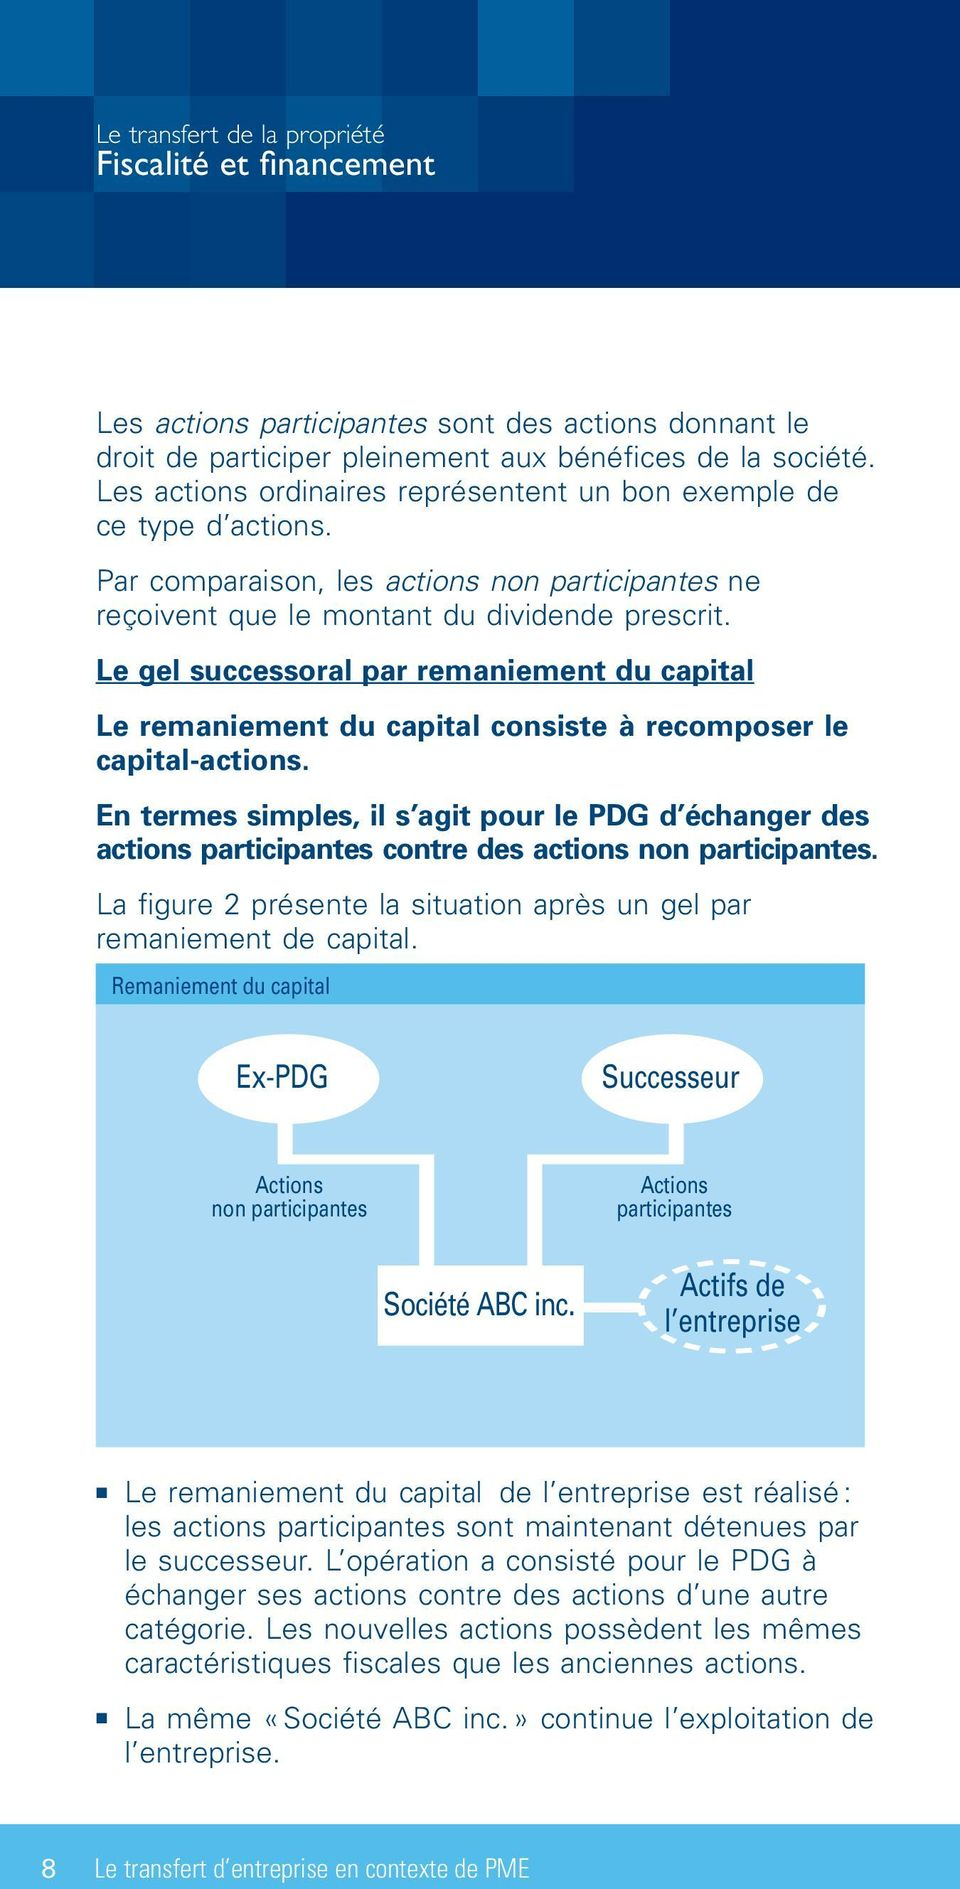 Le gel successoral par remaniement du capital Le remaniement du capital consiste à recomposer le capital-actions.